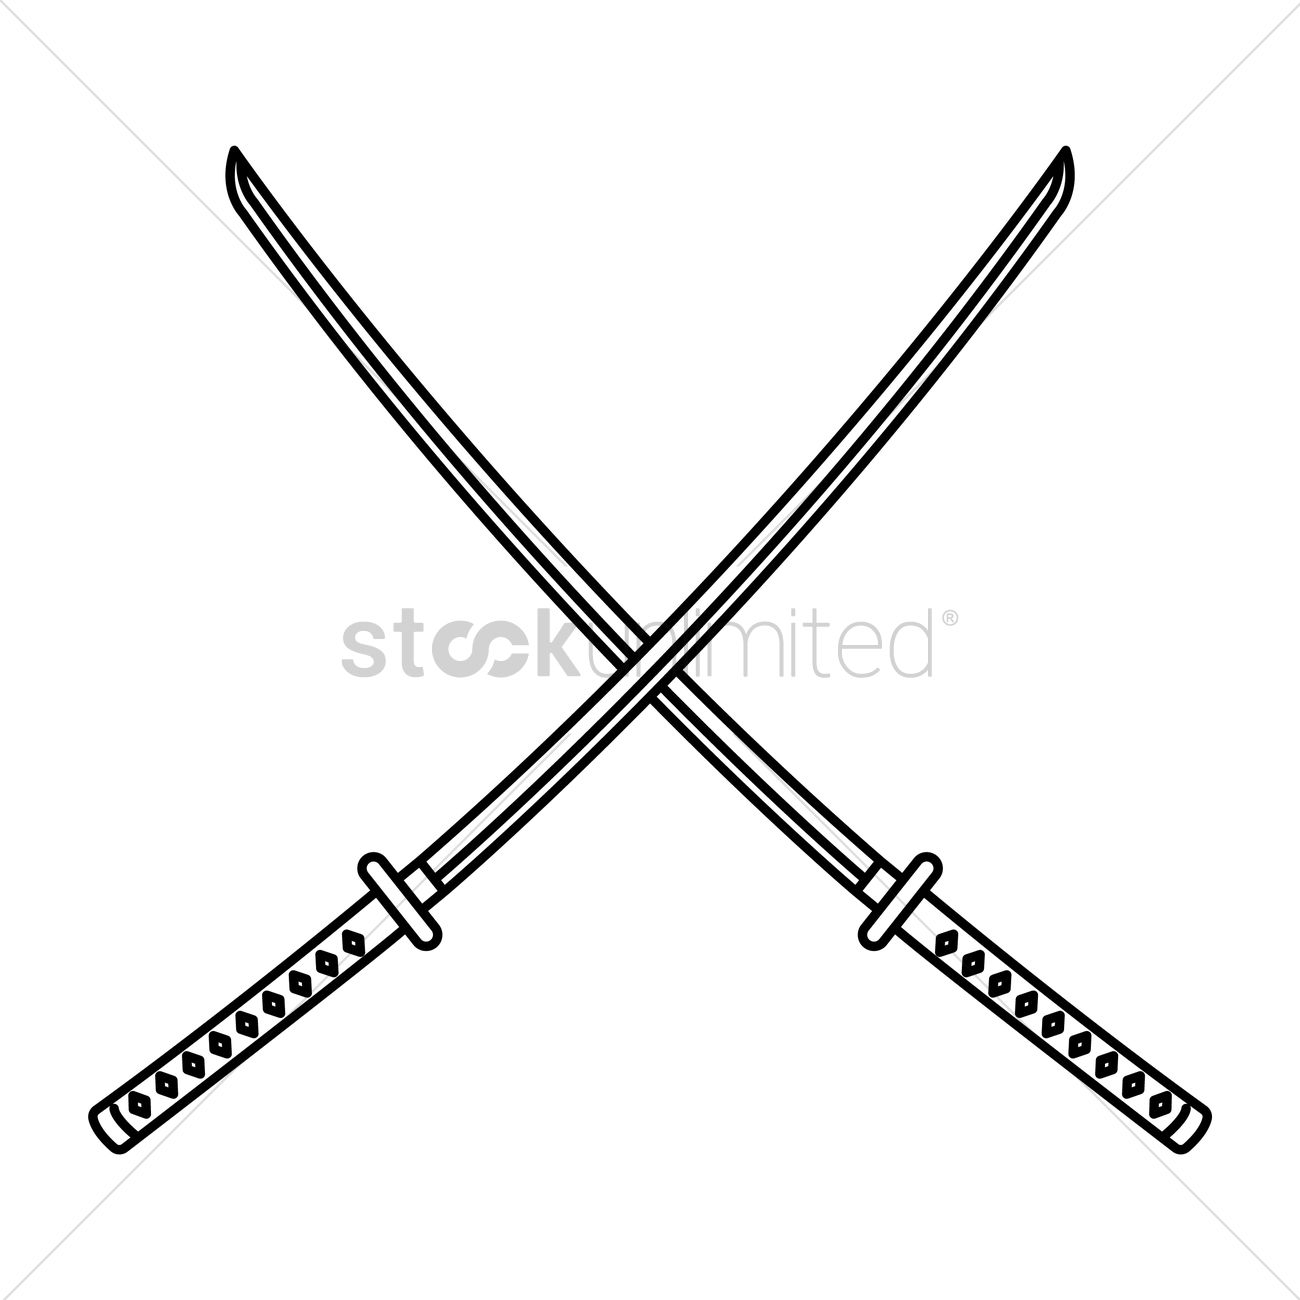 Crossed Katana Vector Image